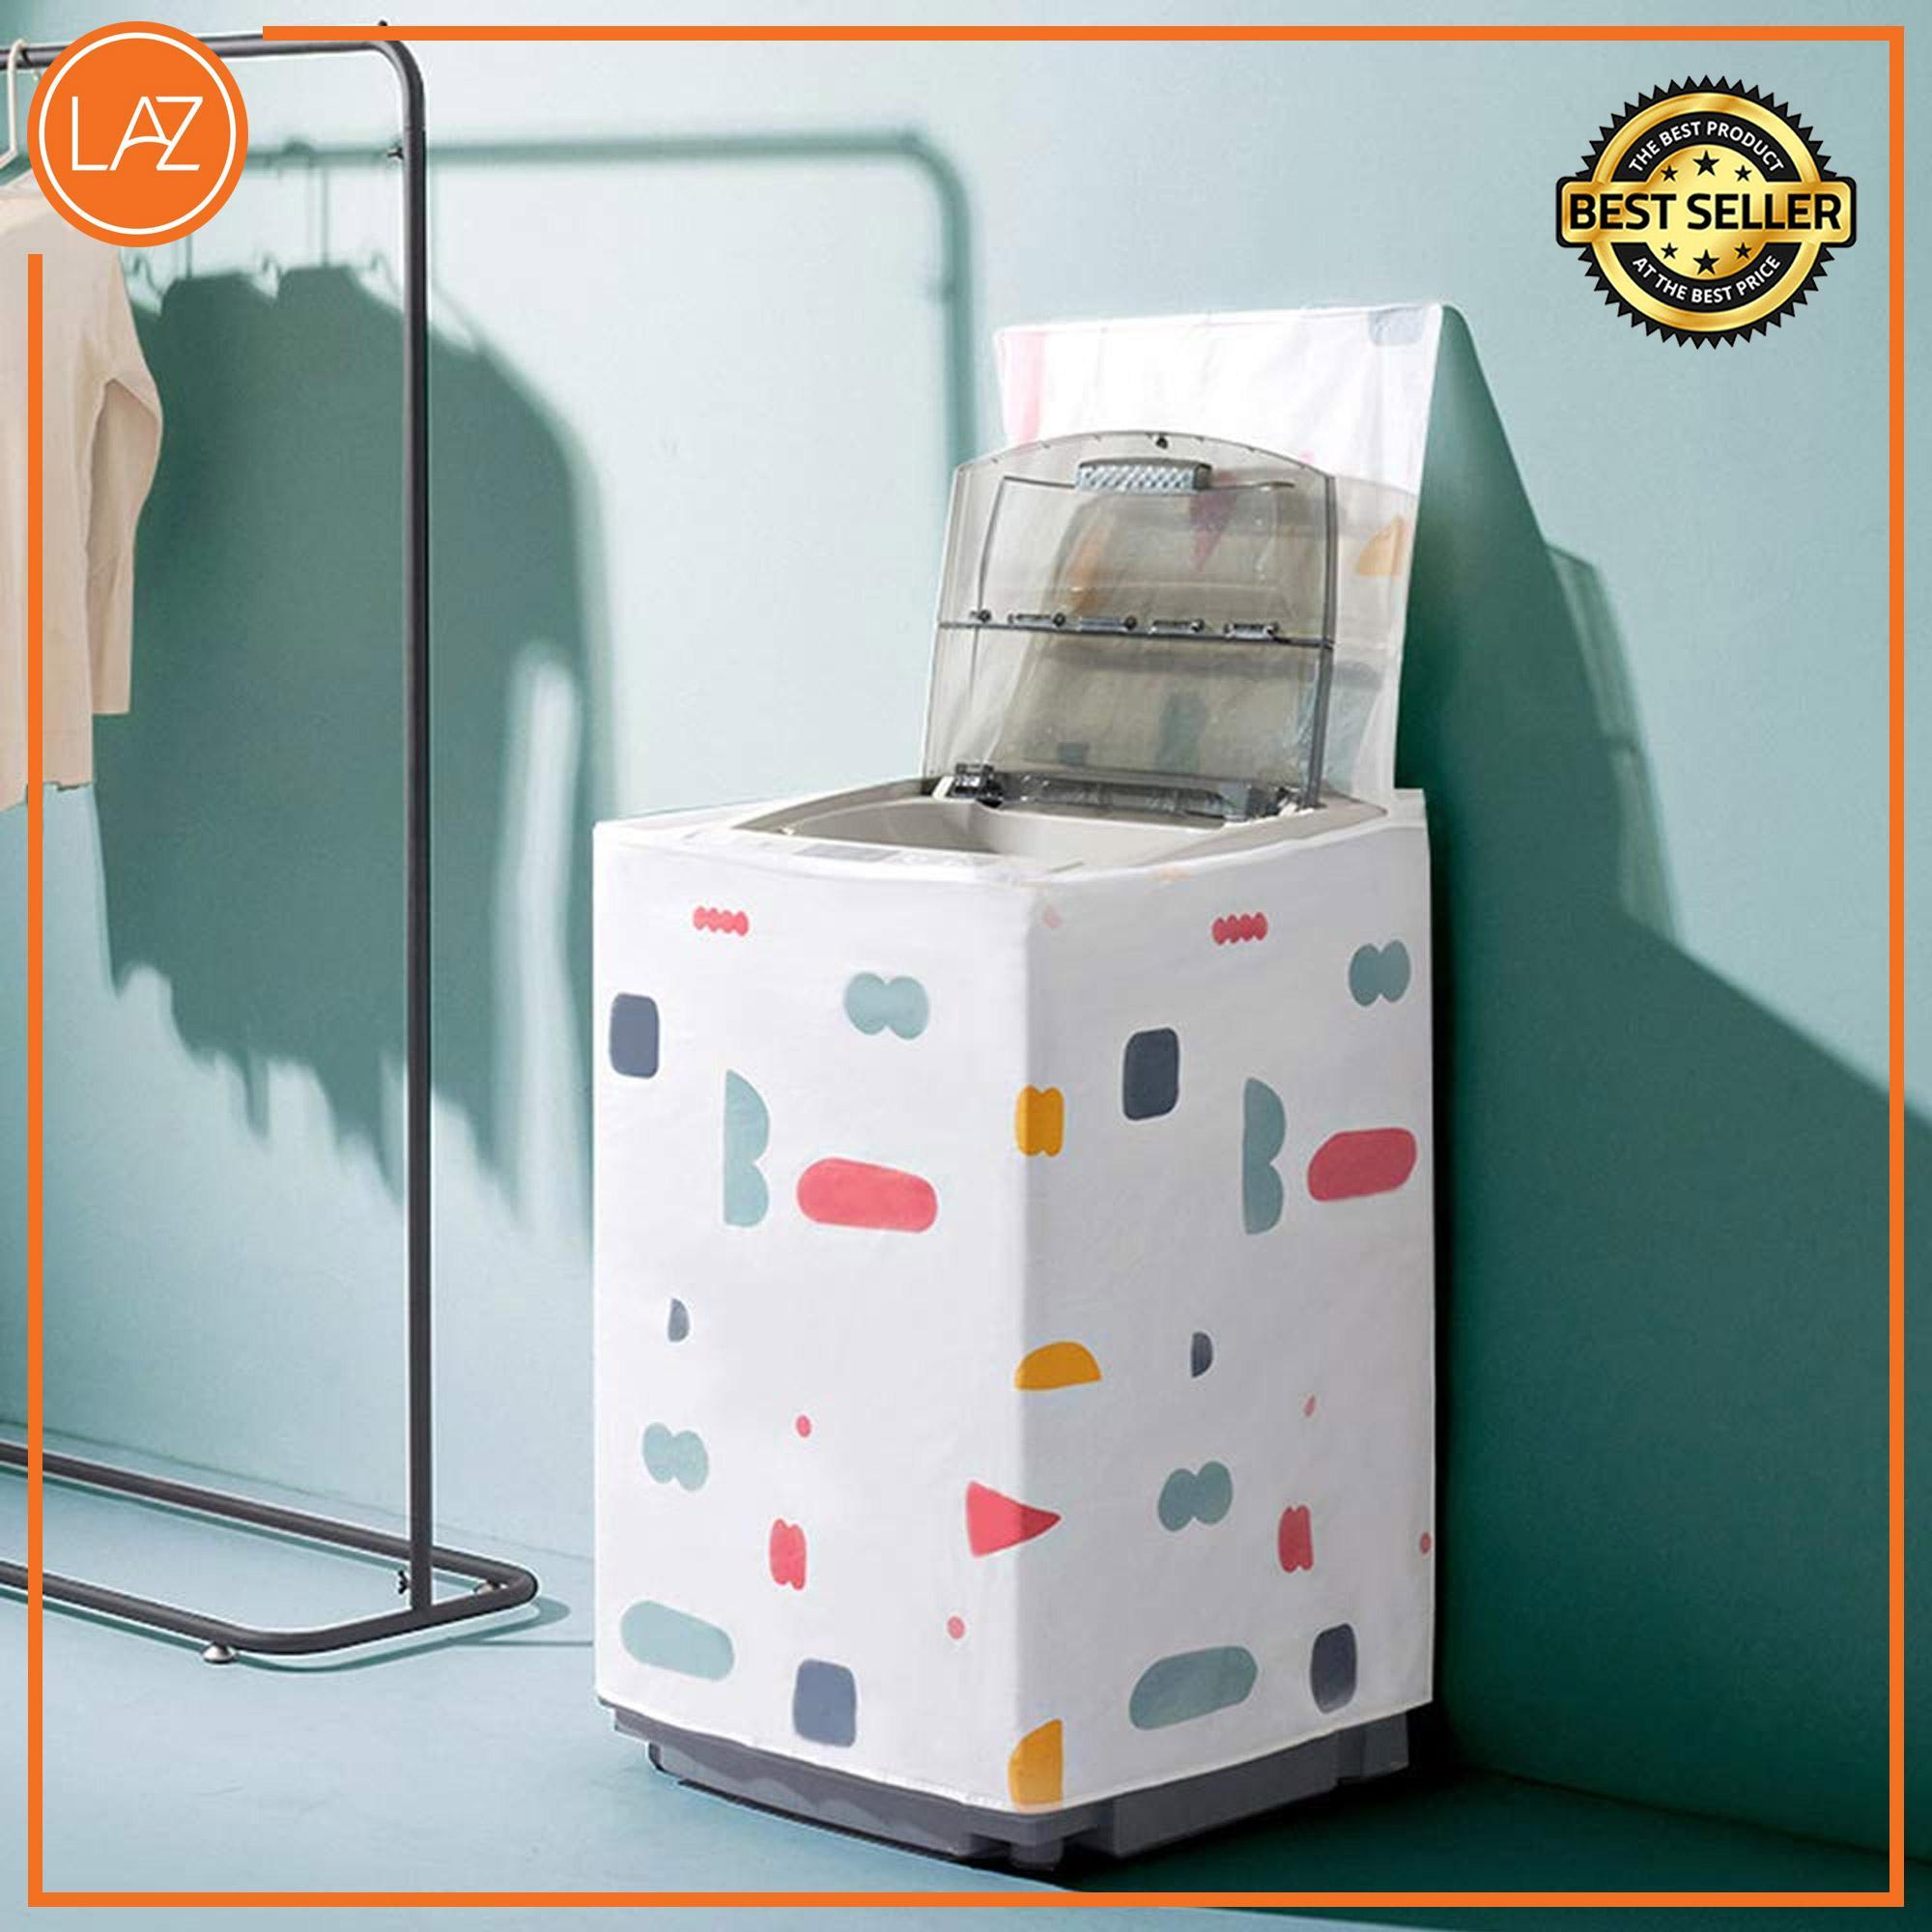 Fashionable Washing Machine Cover *loveworld By Loveworld.